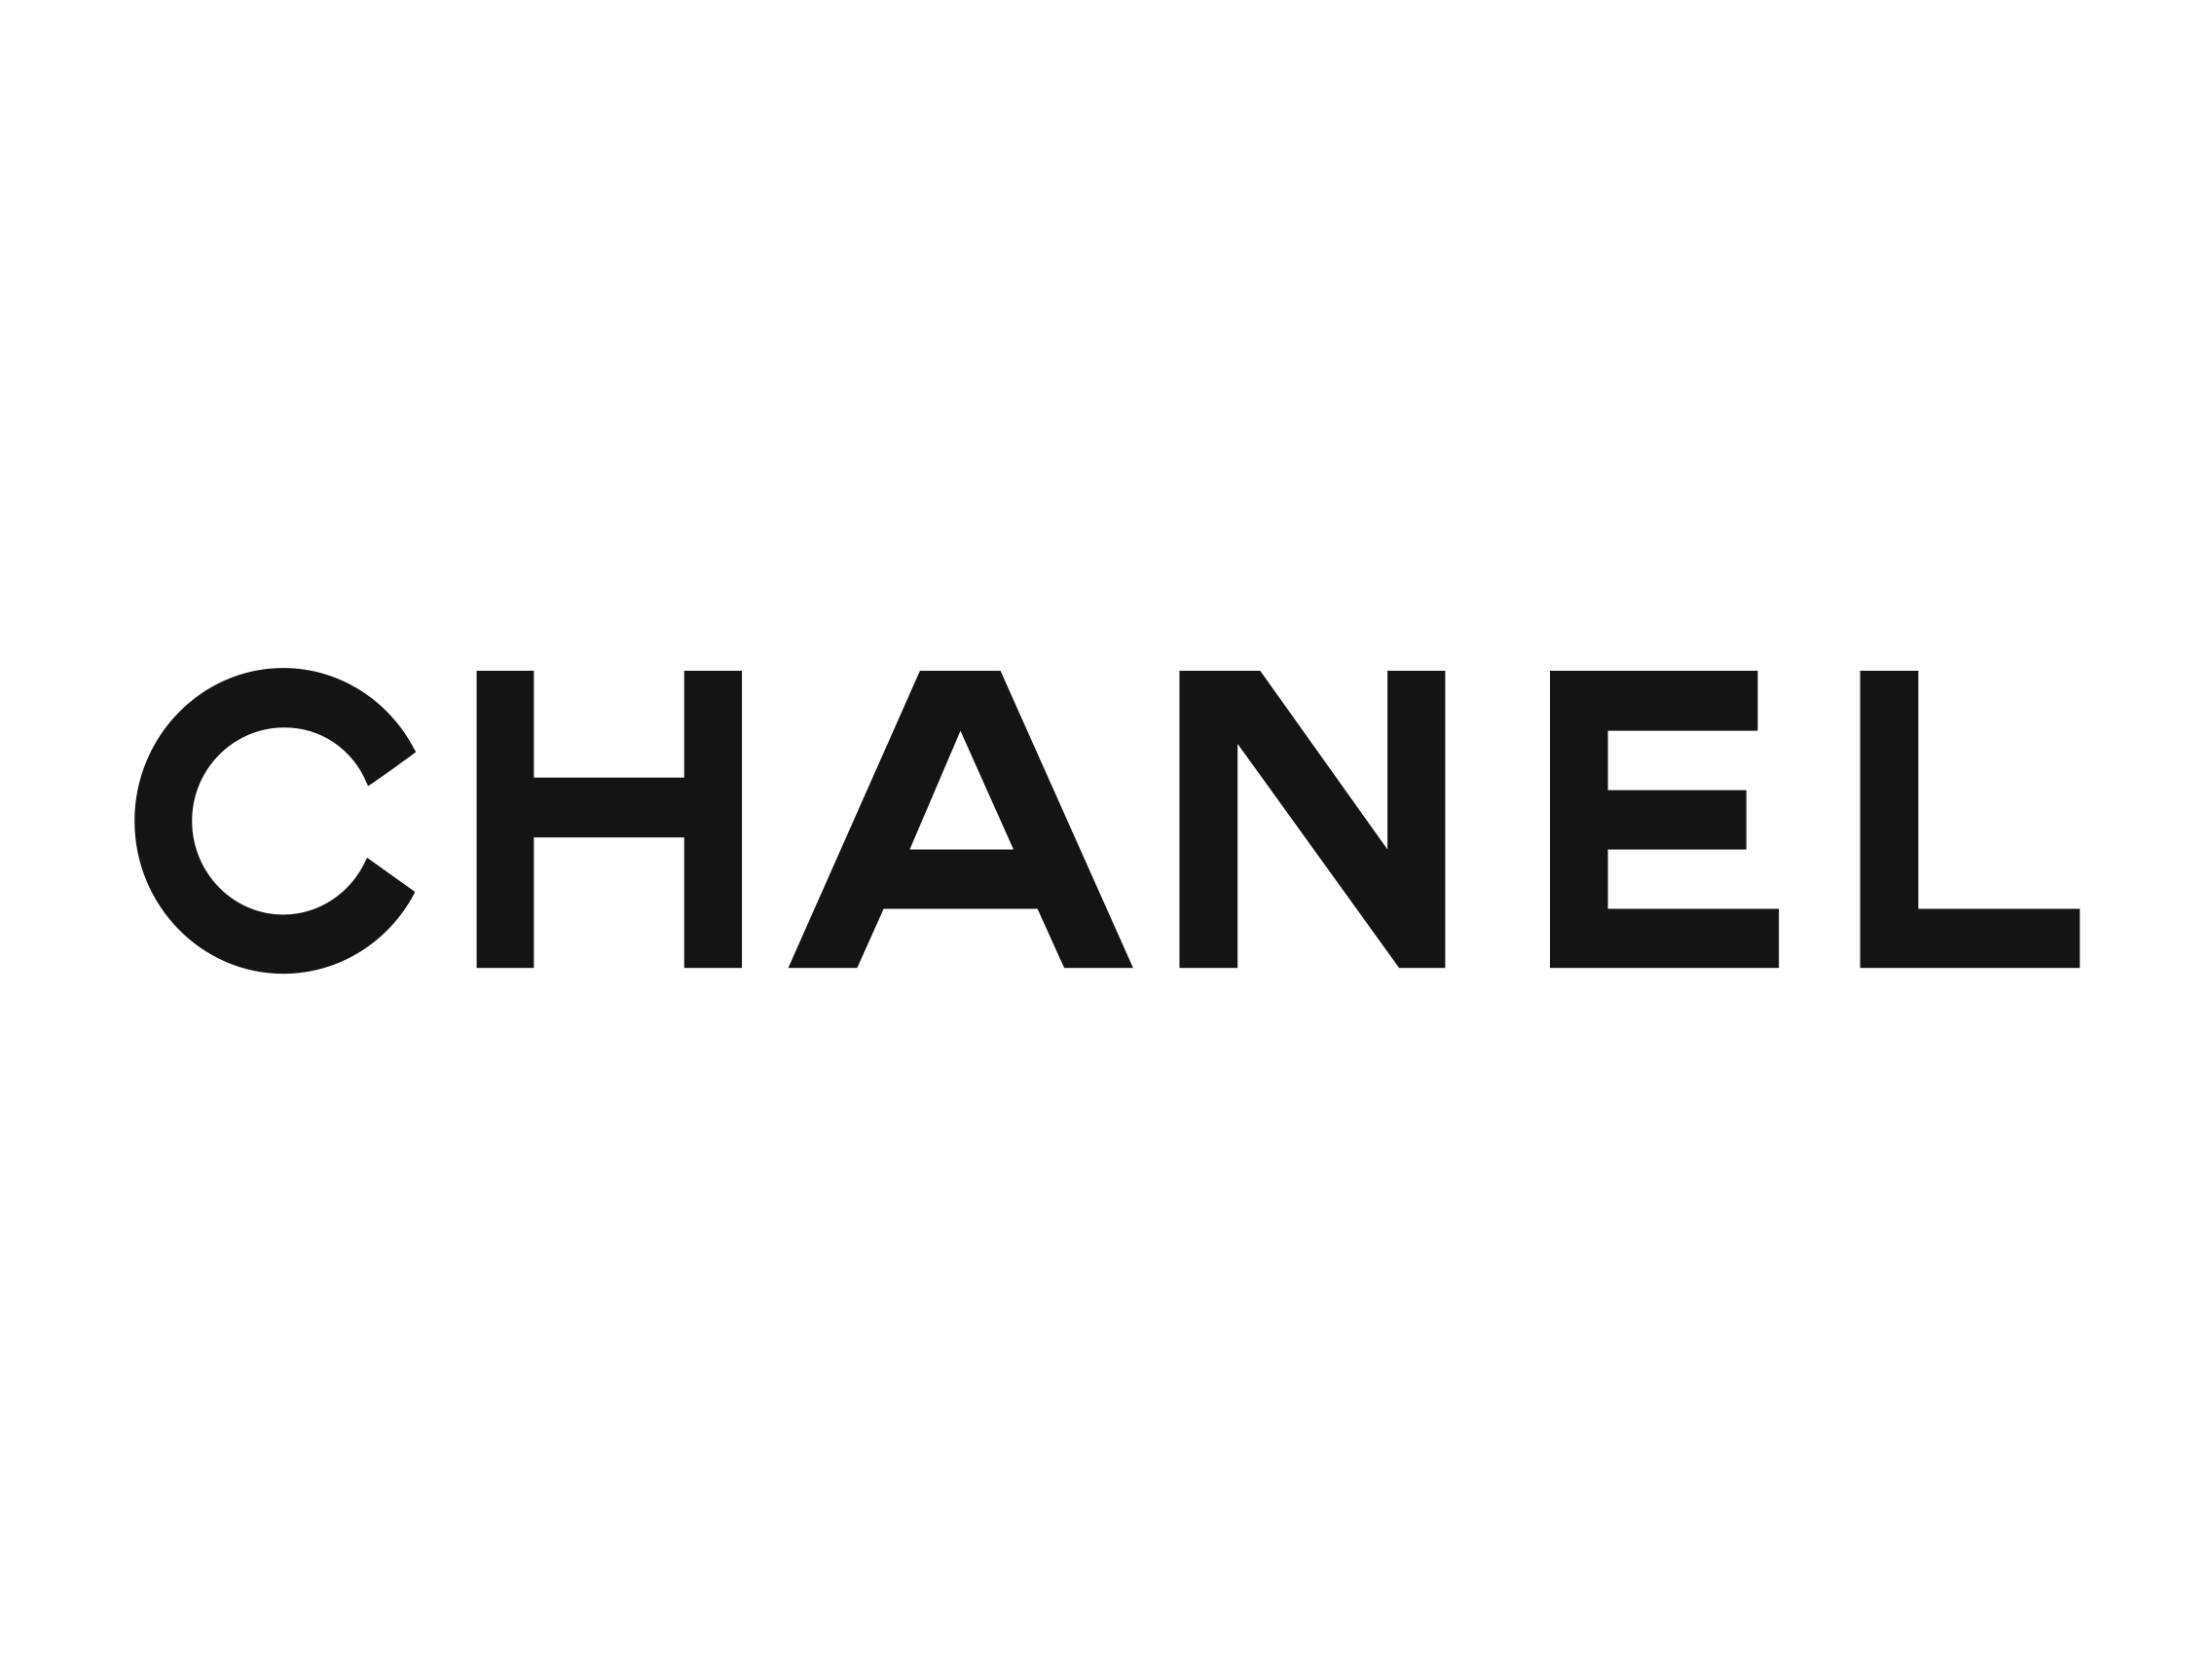 Coco chanel logo png. Google search mania pinterest